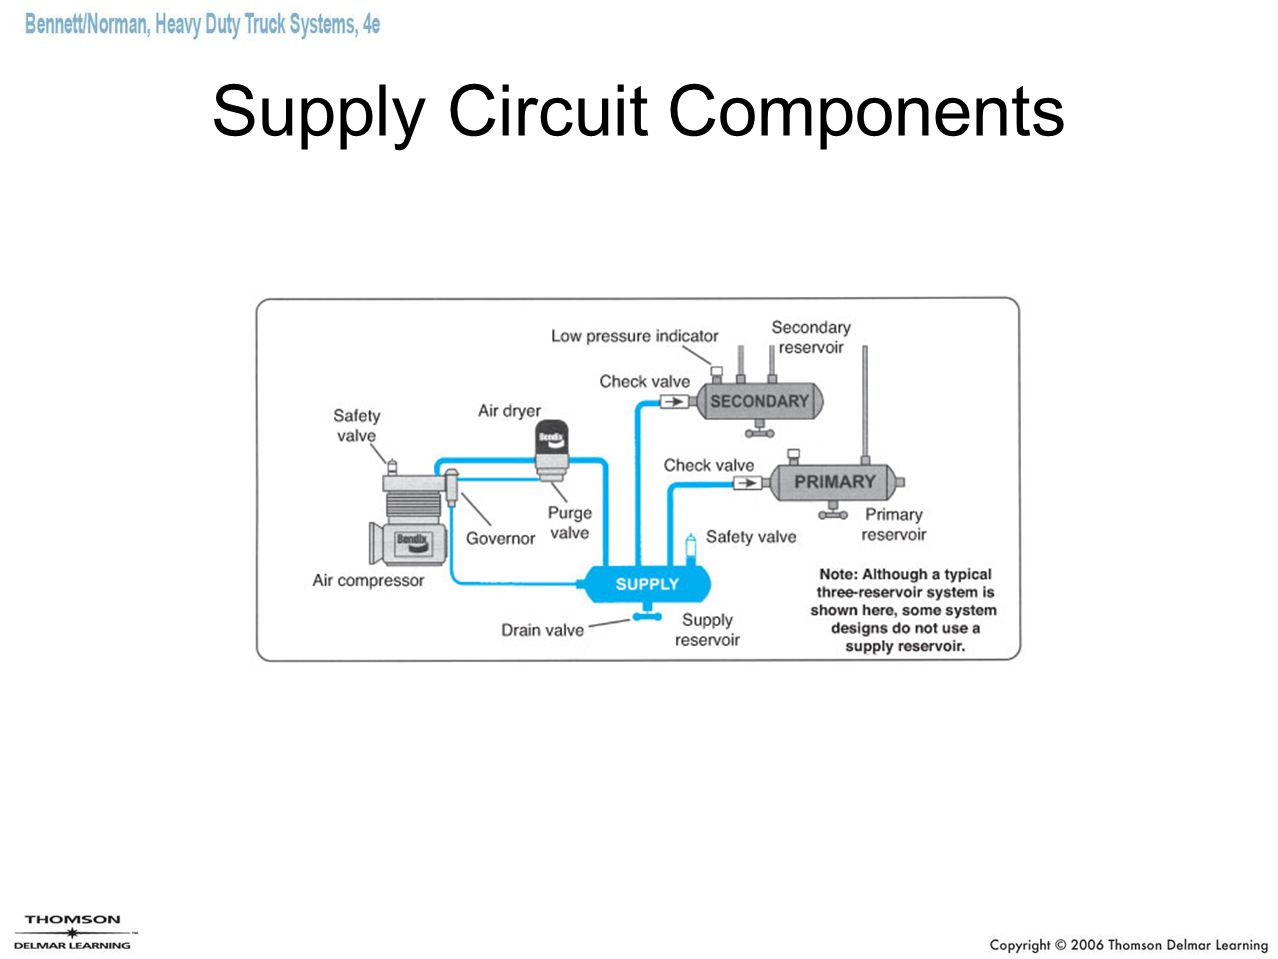 Supply Circuit Components